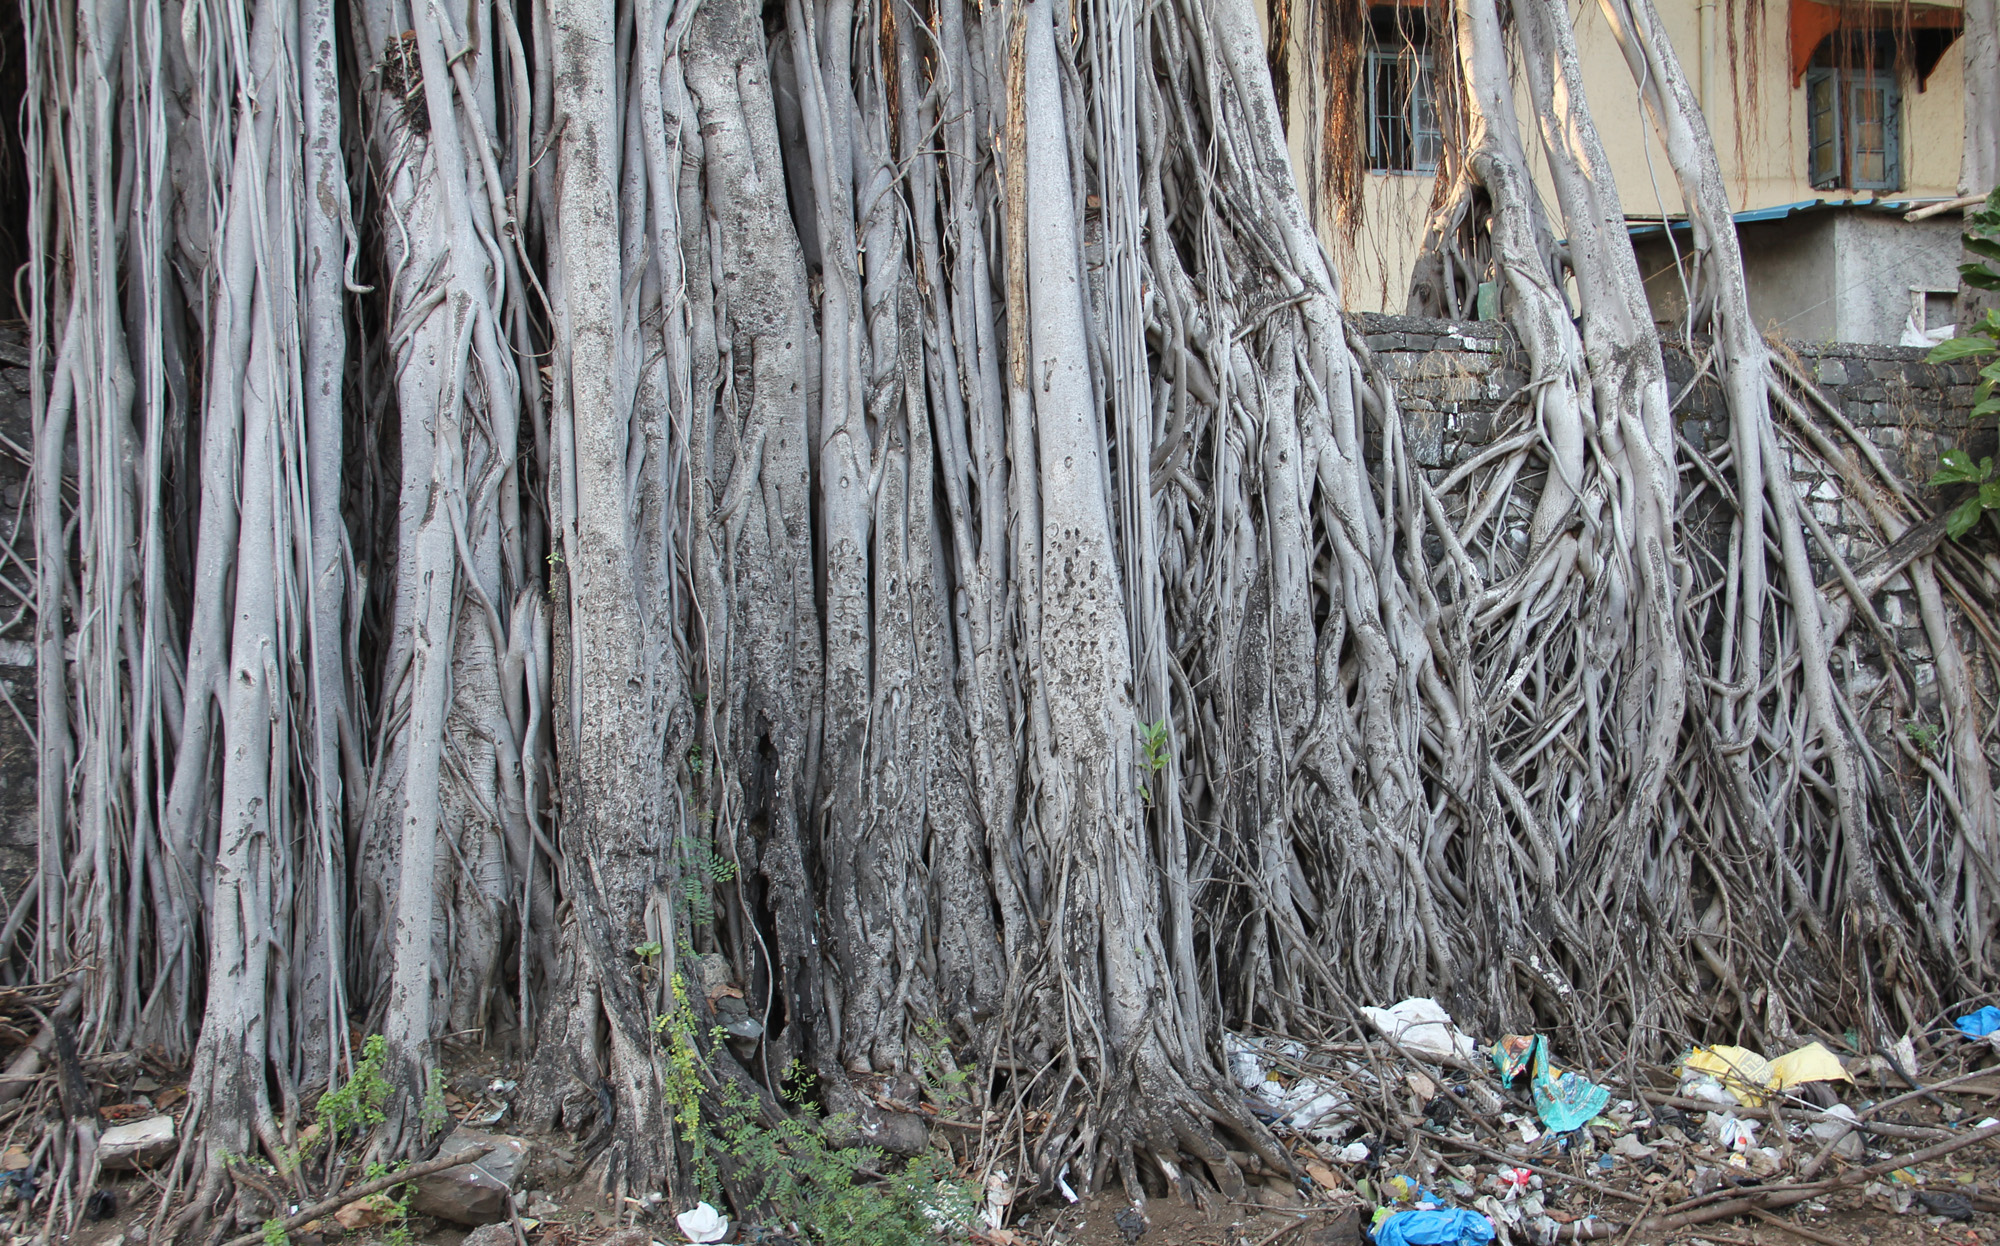 Magnificient roots of a peepal tree  near the rail tracks in Mumbai.